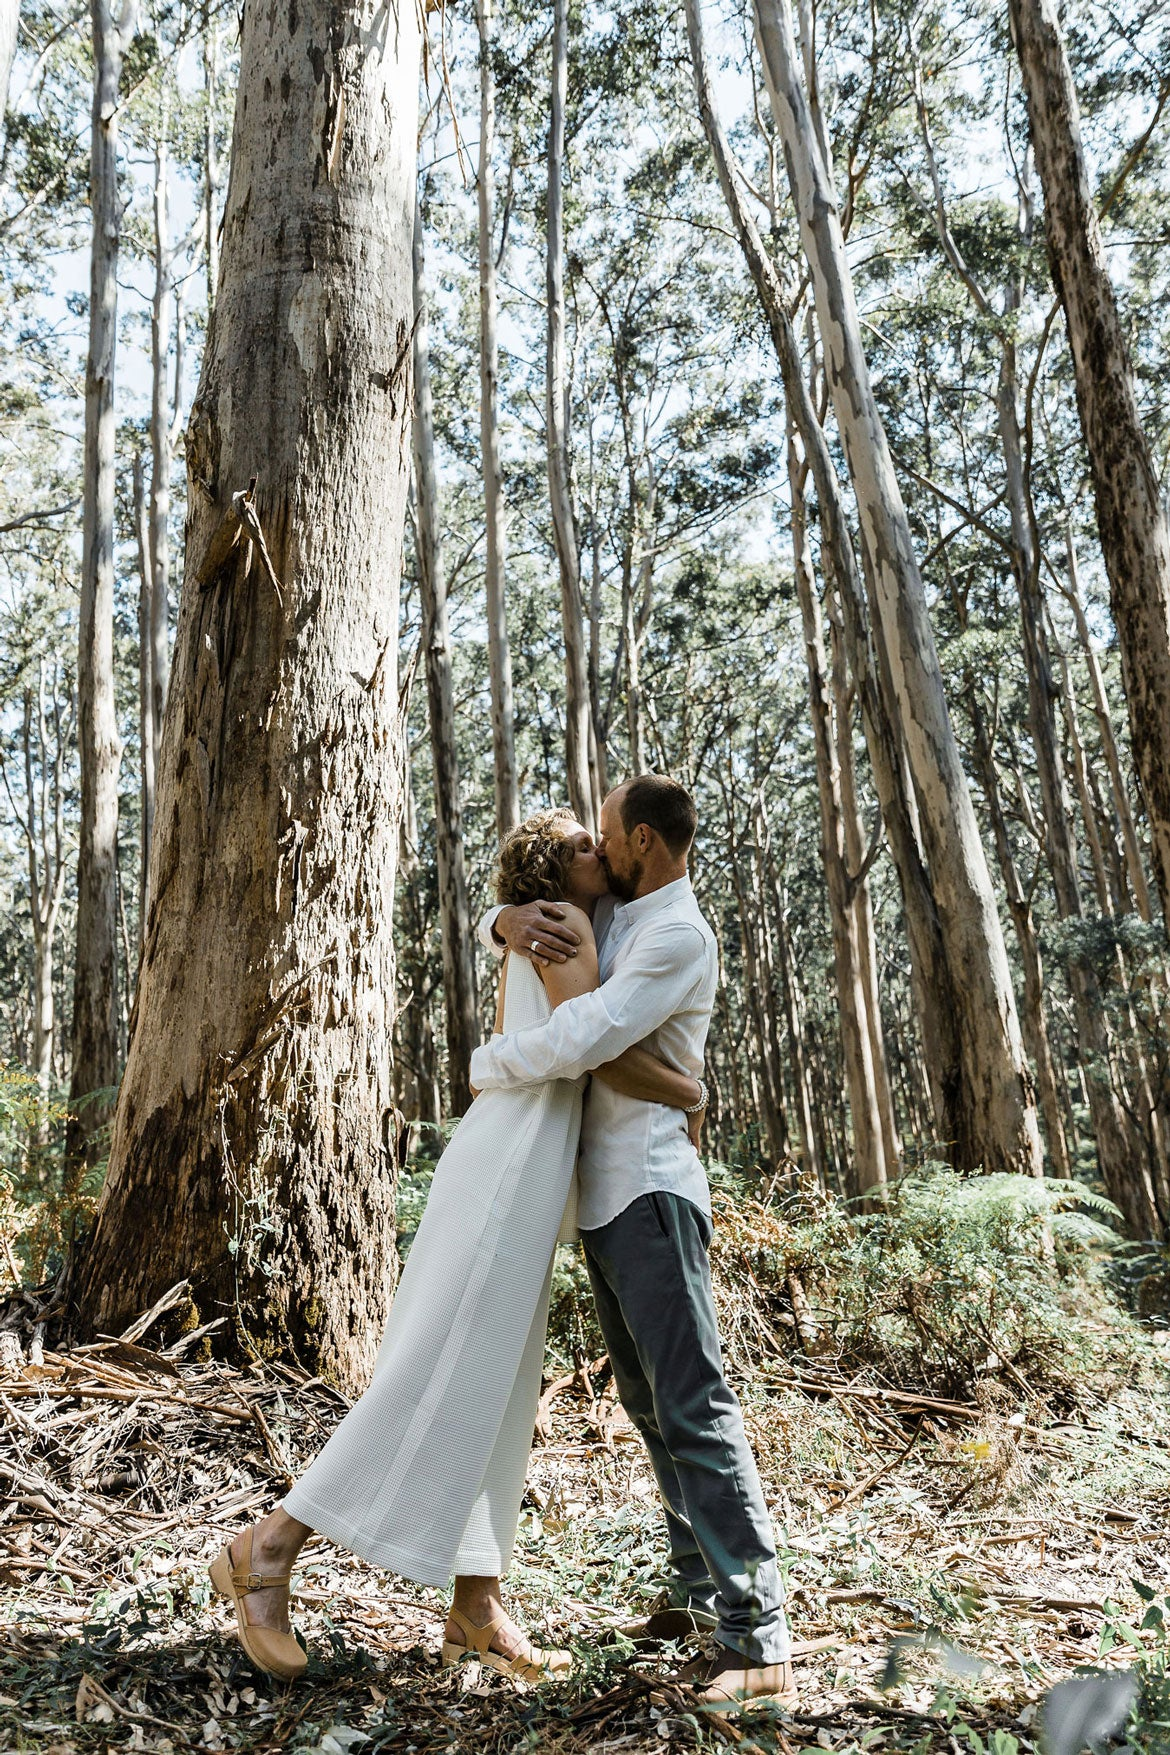 Wild Goose Camping wedding in the forest, Clint and Chloe